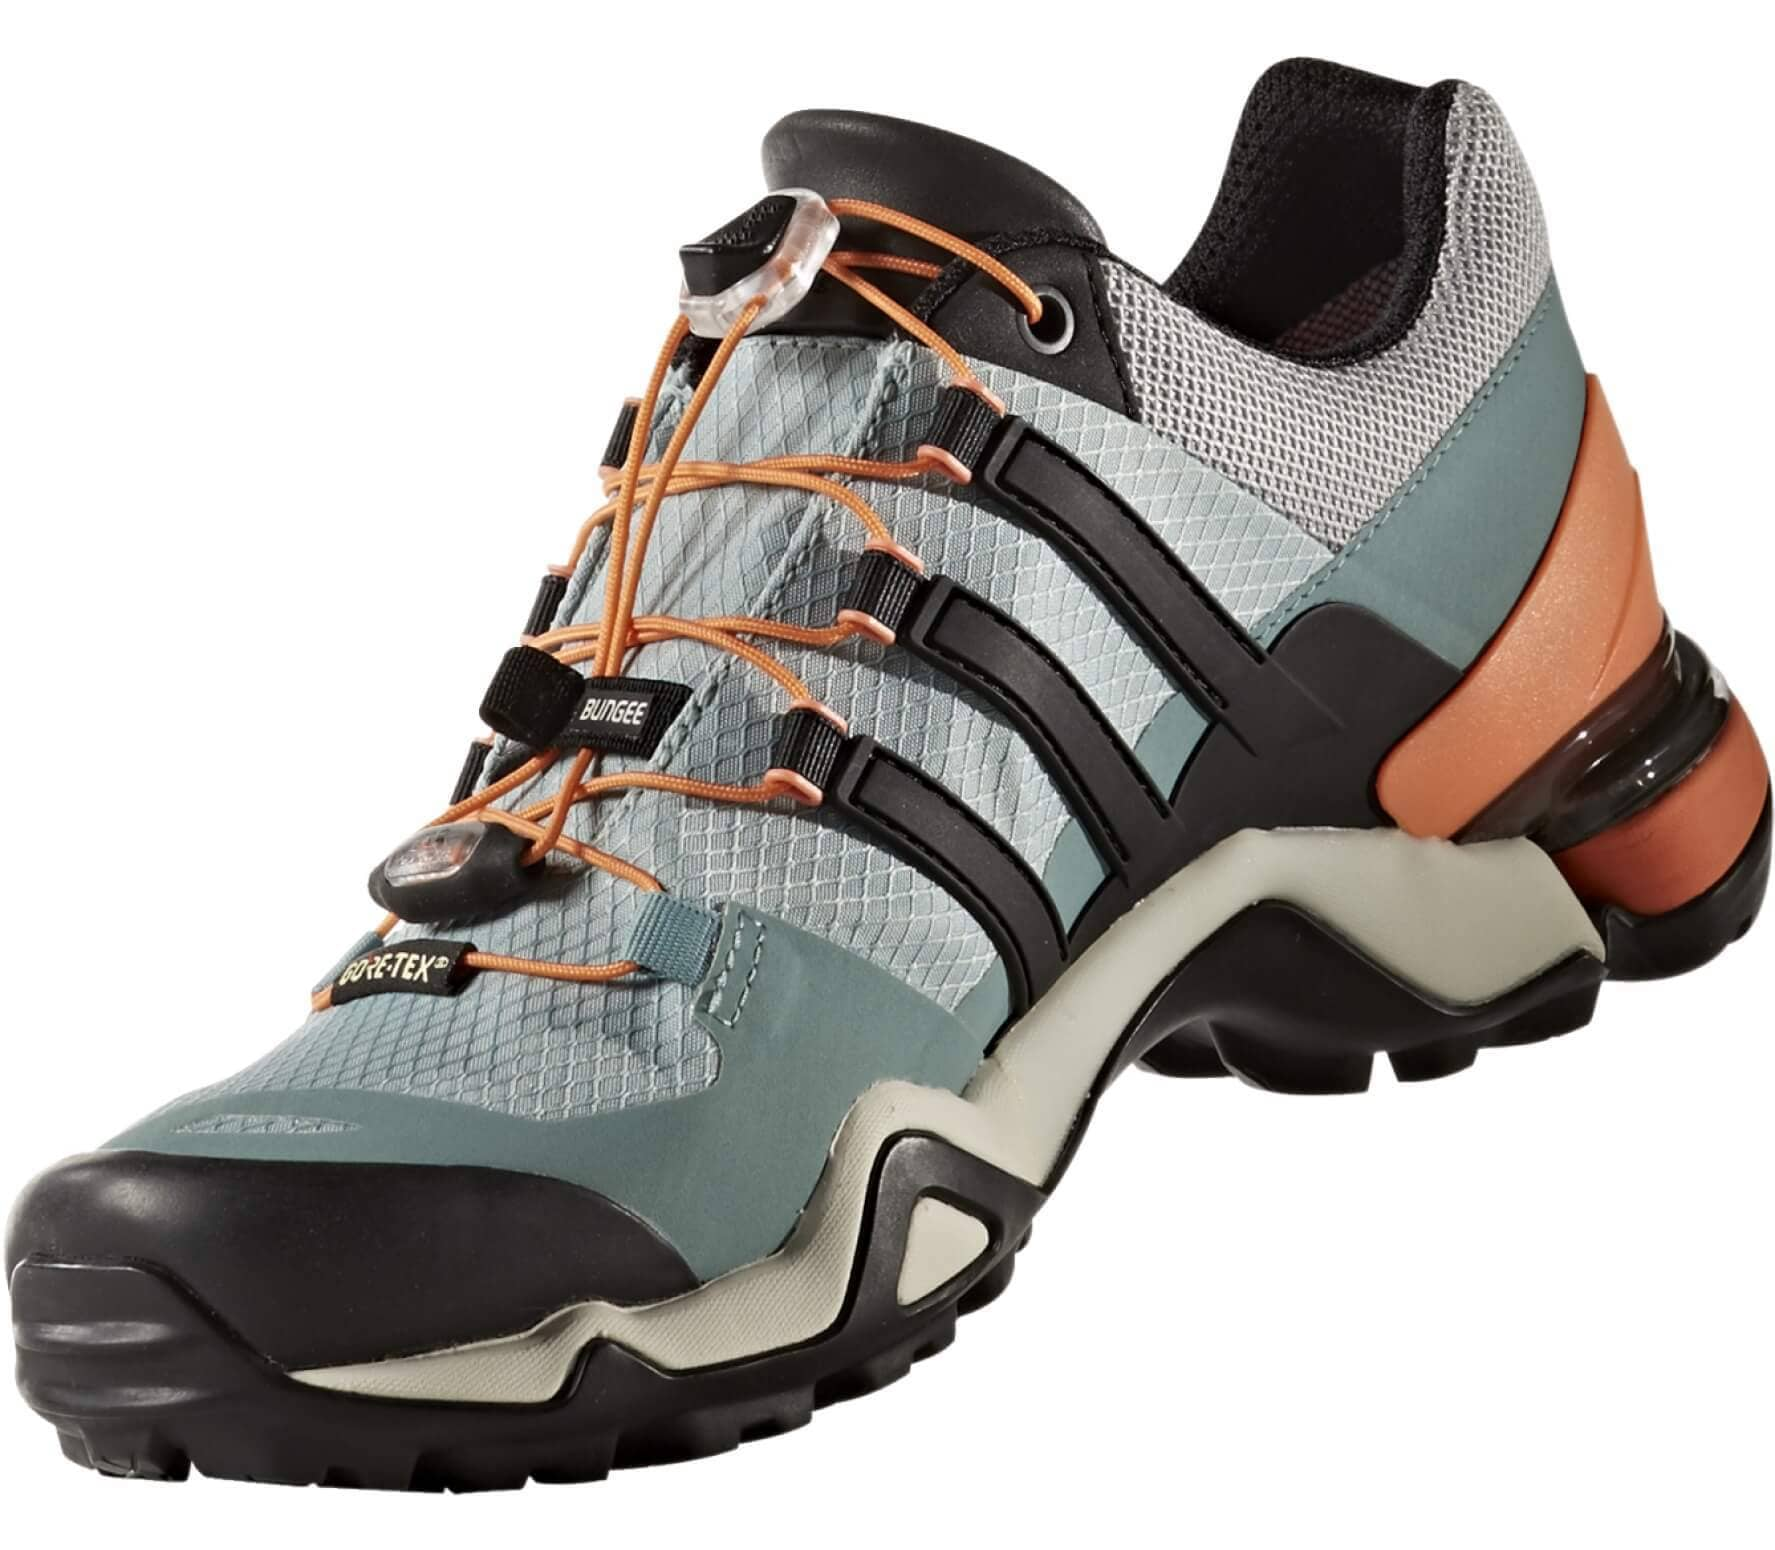 huge discount 0de9f d67c5 Adidas - Terrex Fast R GTX womens hiking shoes (light greenblack)